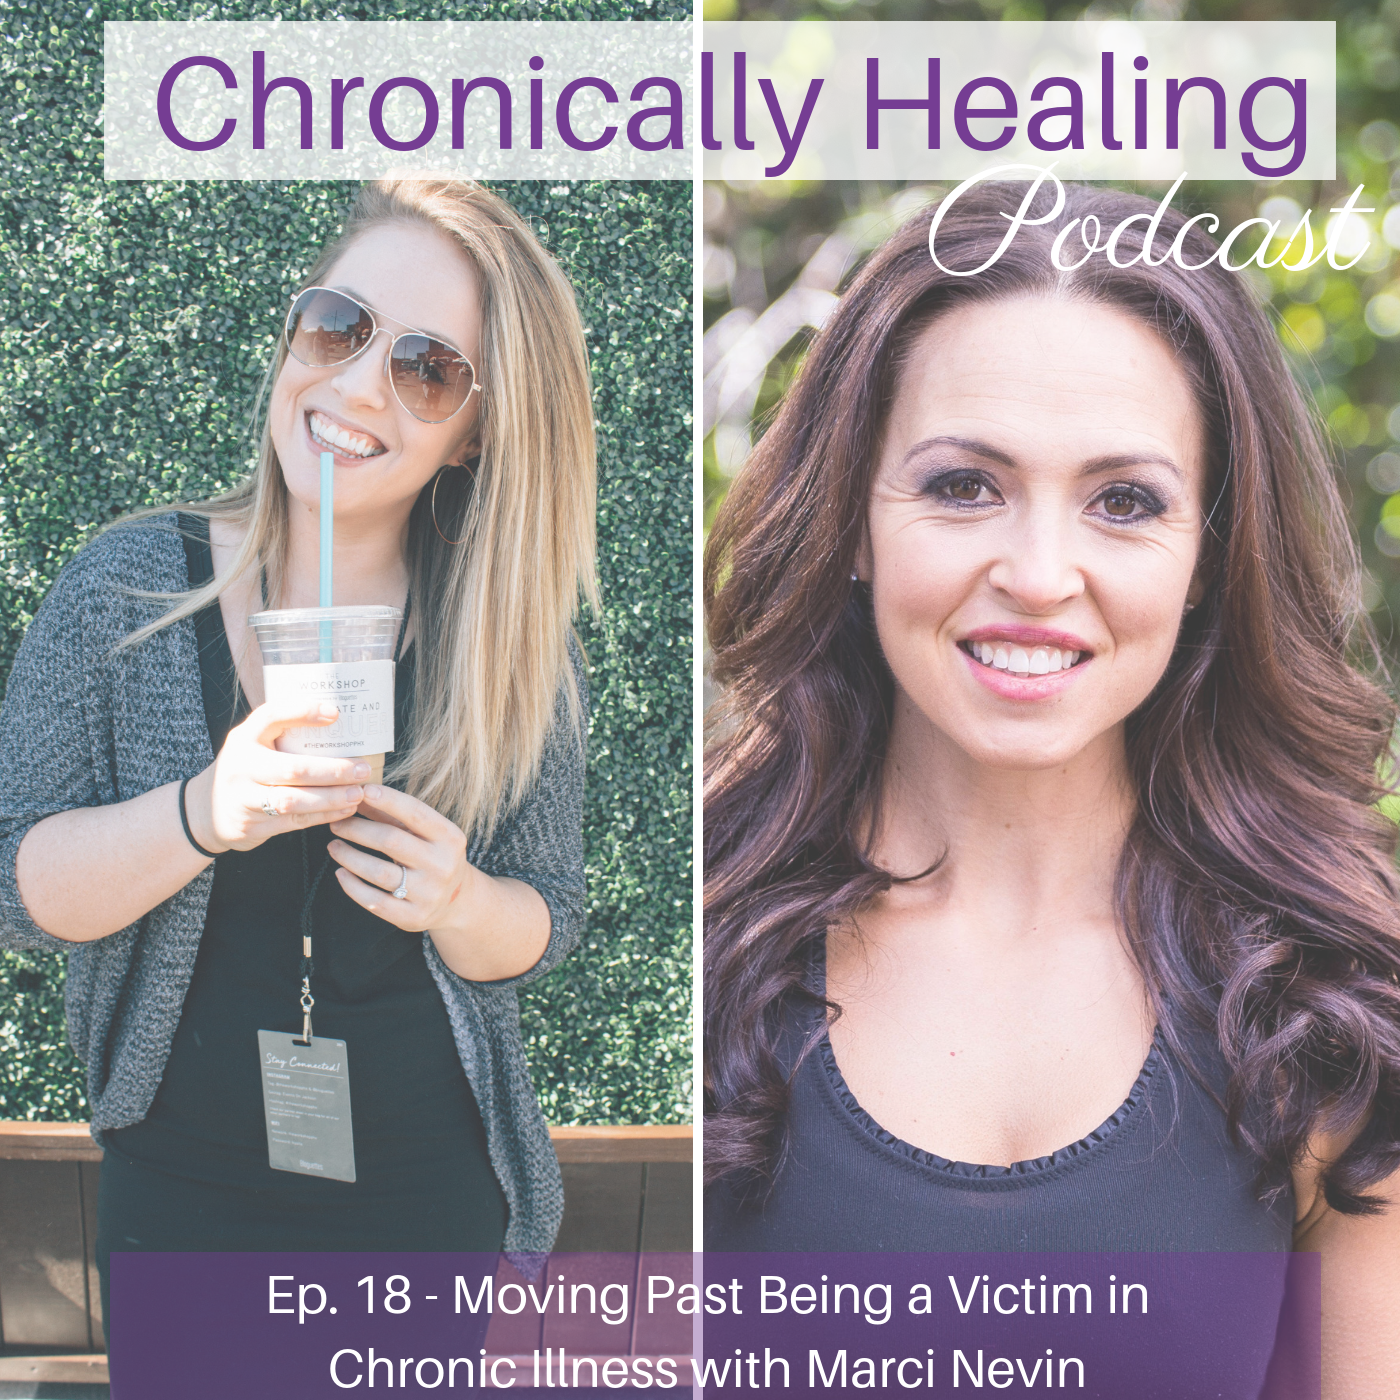 Chronically Healing Podcast Ep. 18 – Moving Past Being a Victim in Chronic Illness with Marci Nevin